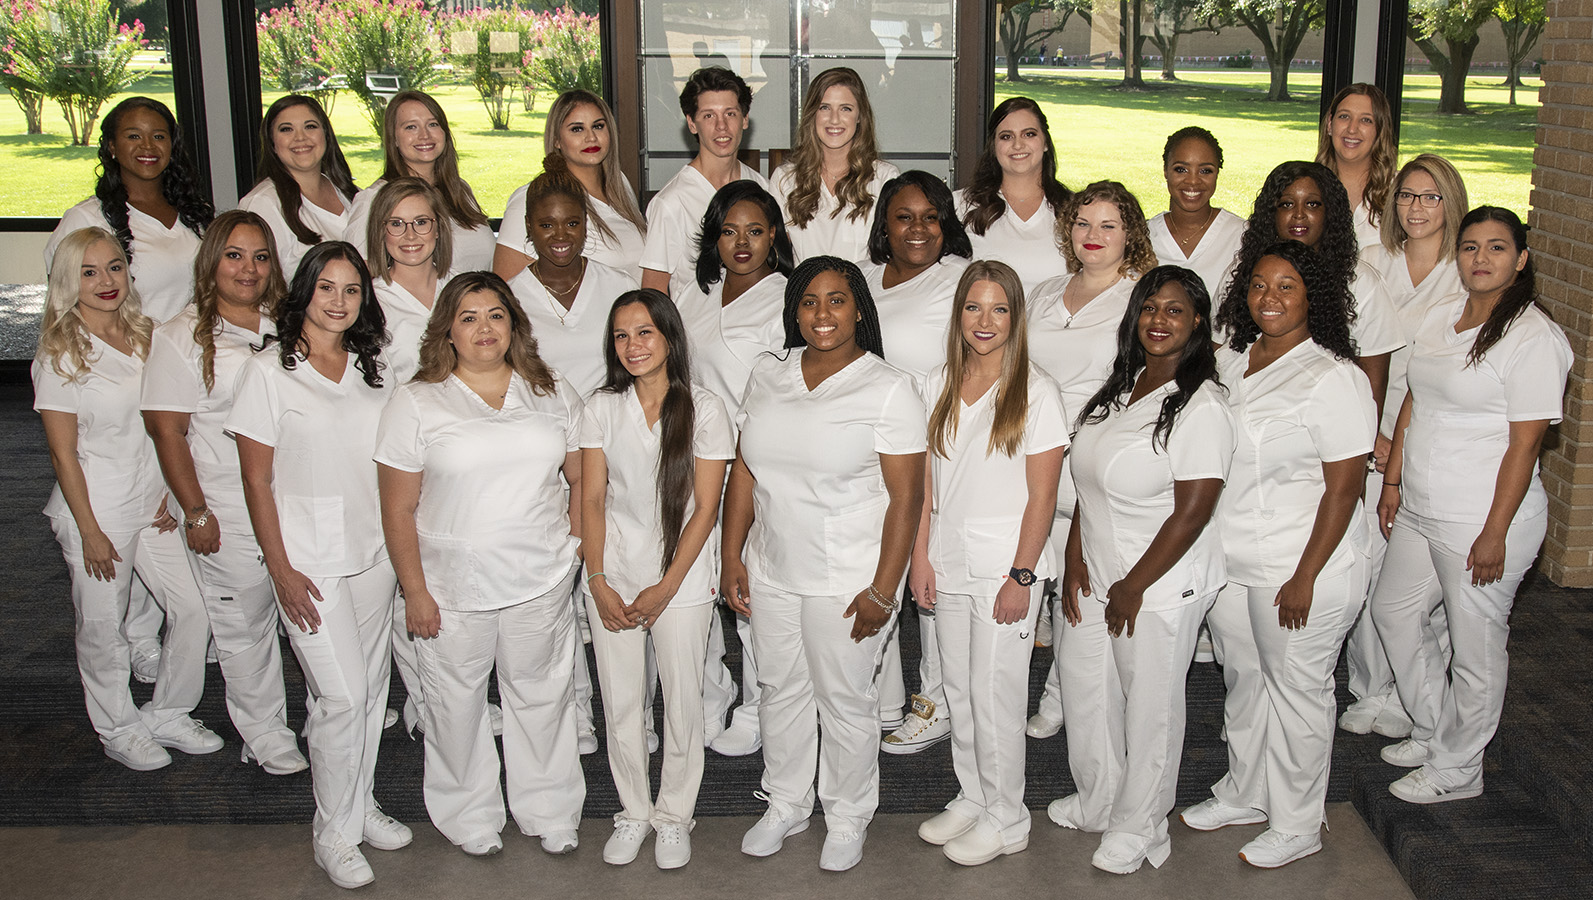 WCJC VOCATIONAL NURSING PROGRAM GRADUATION